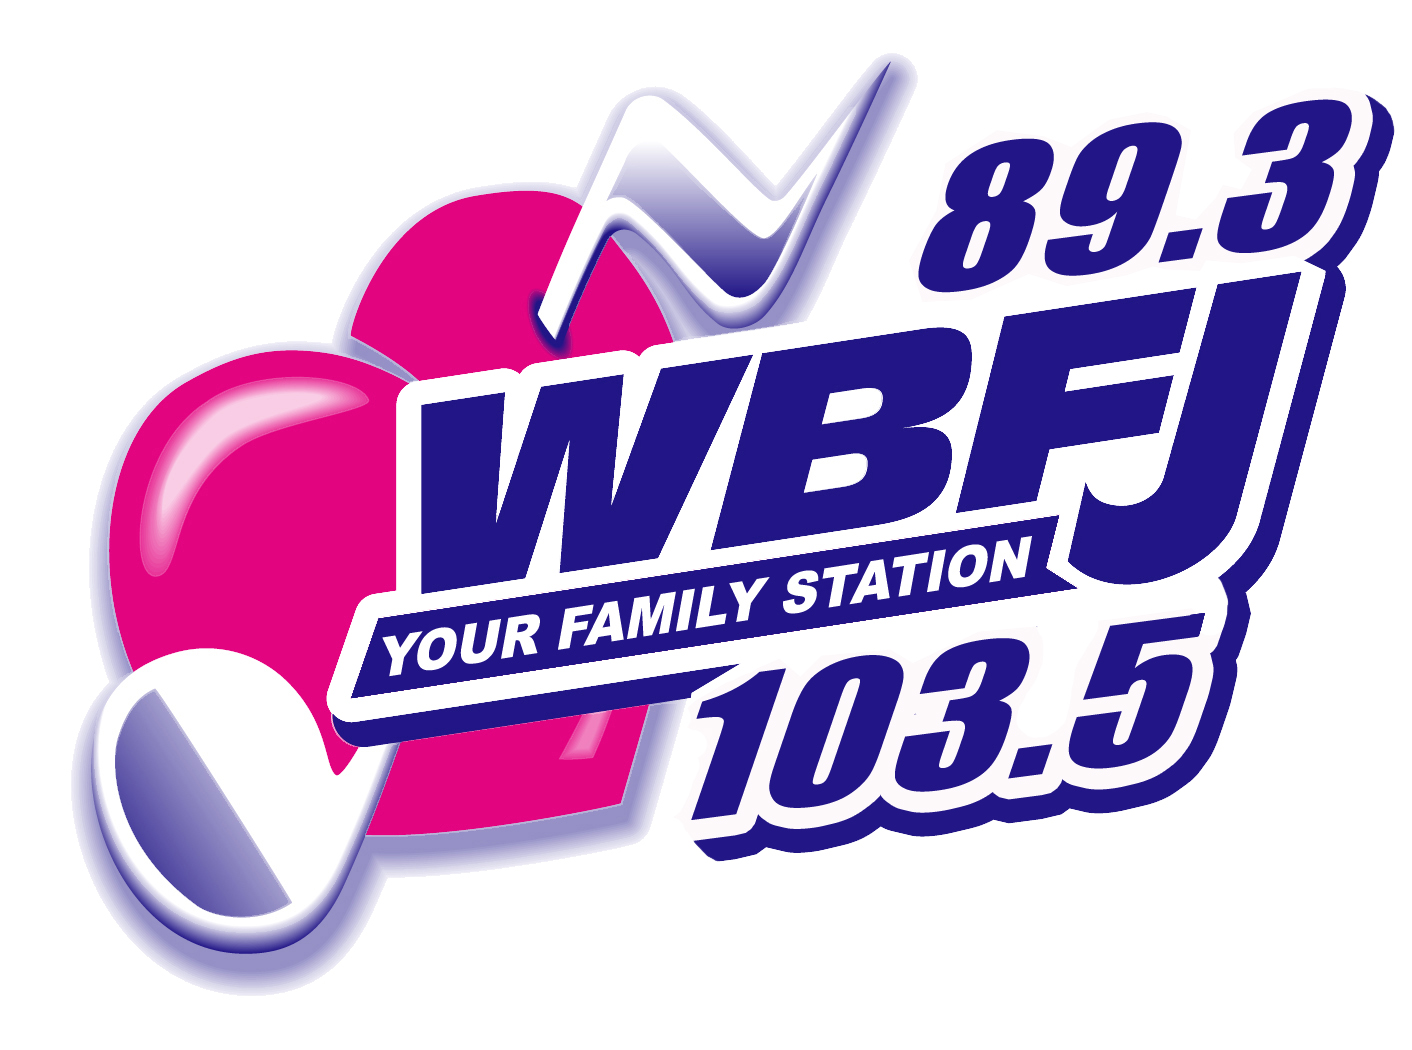 WBFJ_logo_w_frequency.jpg